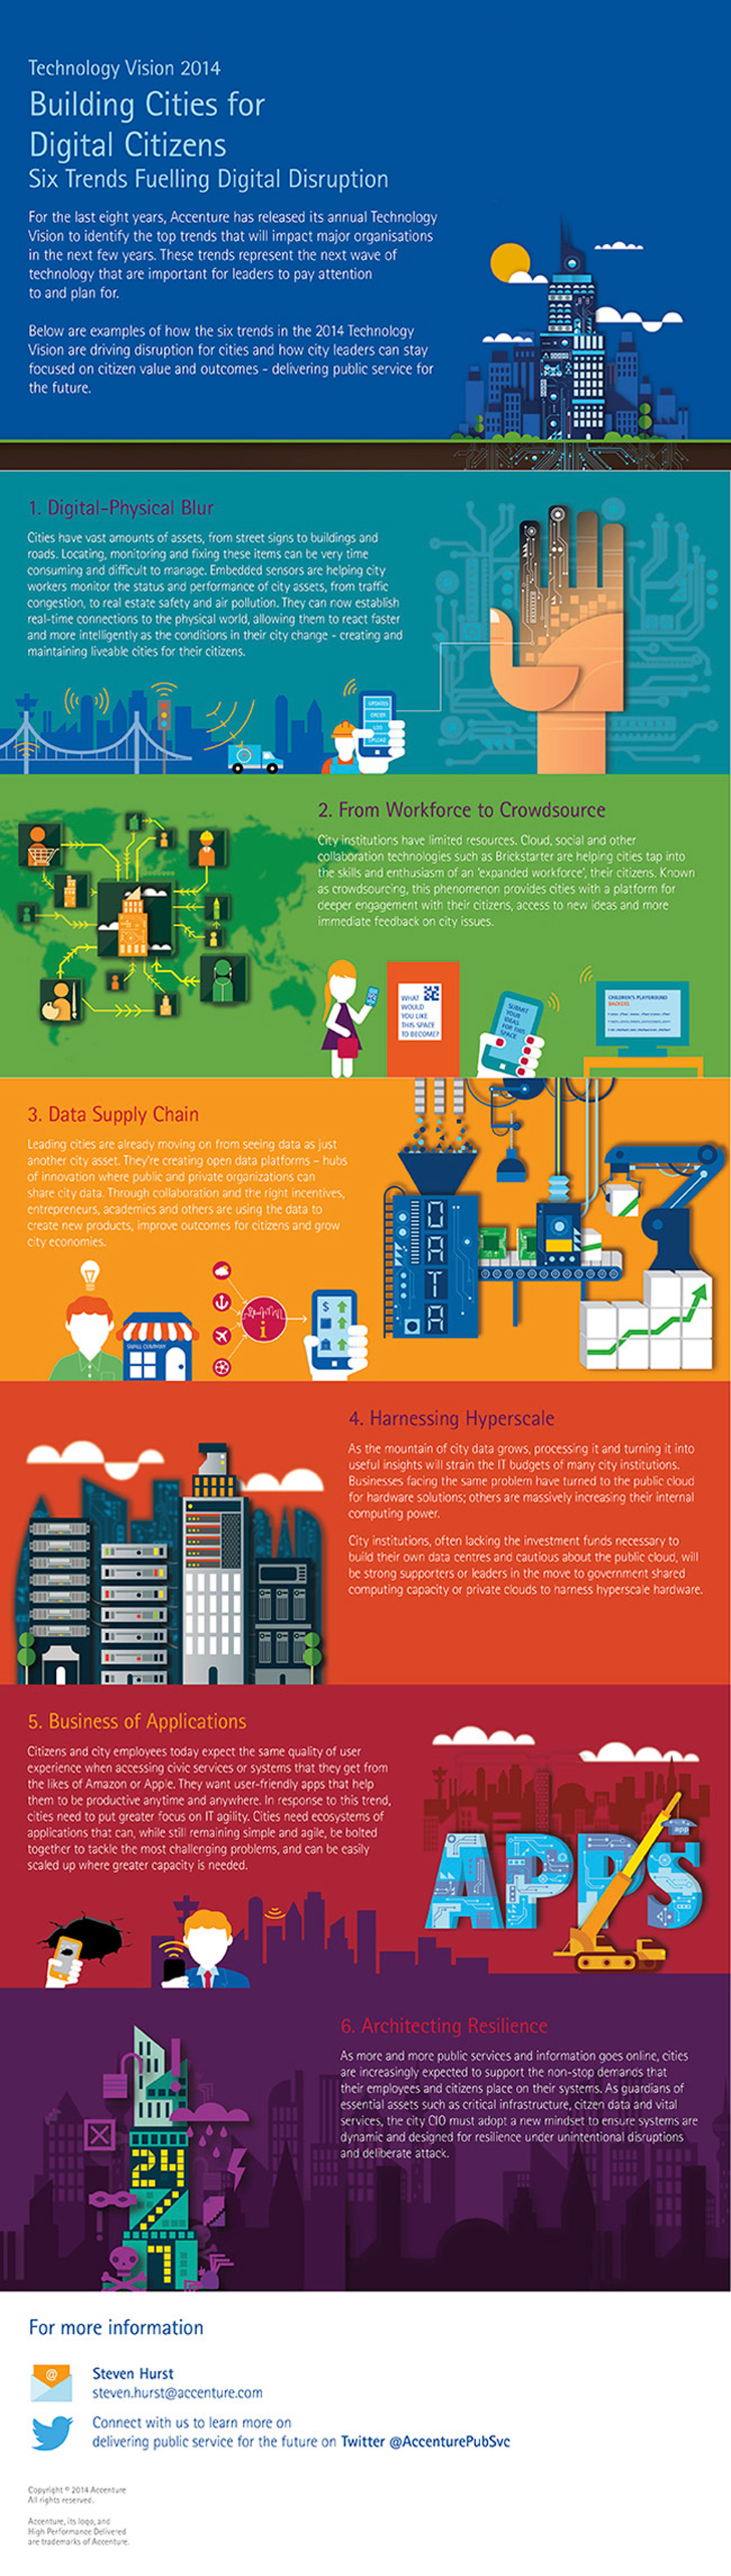 Technology Vision 2014: Building Cities for Digital Citizens